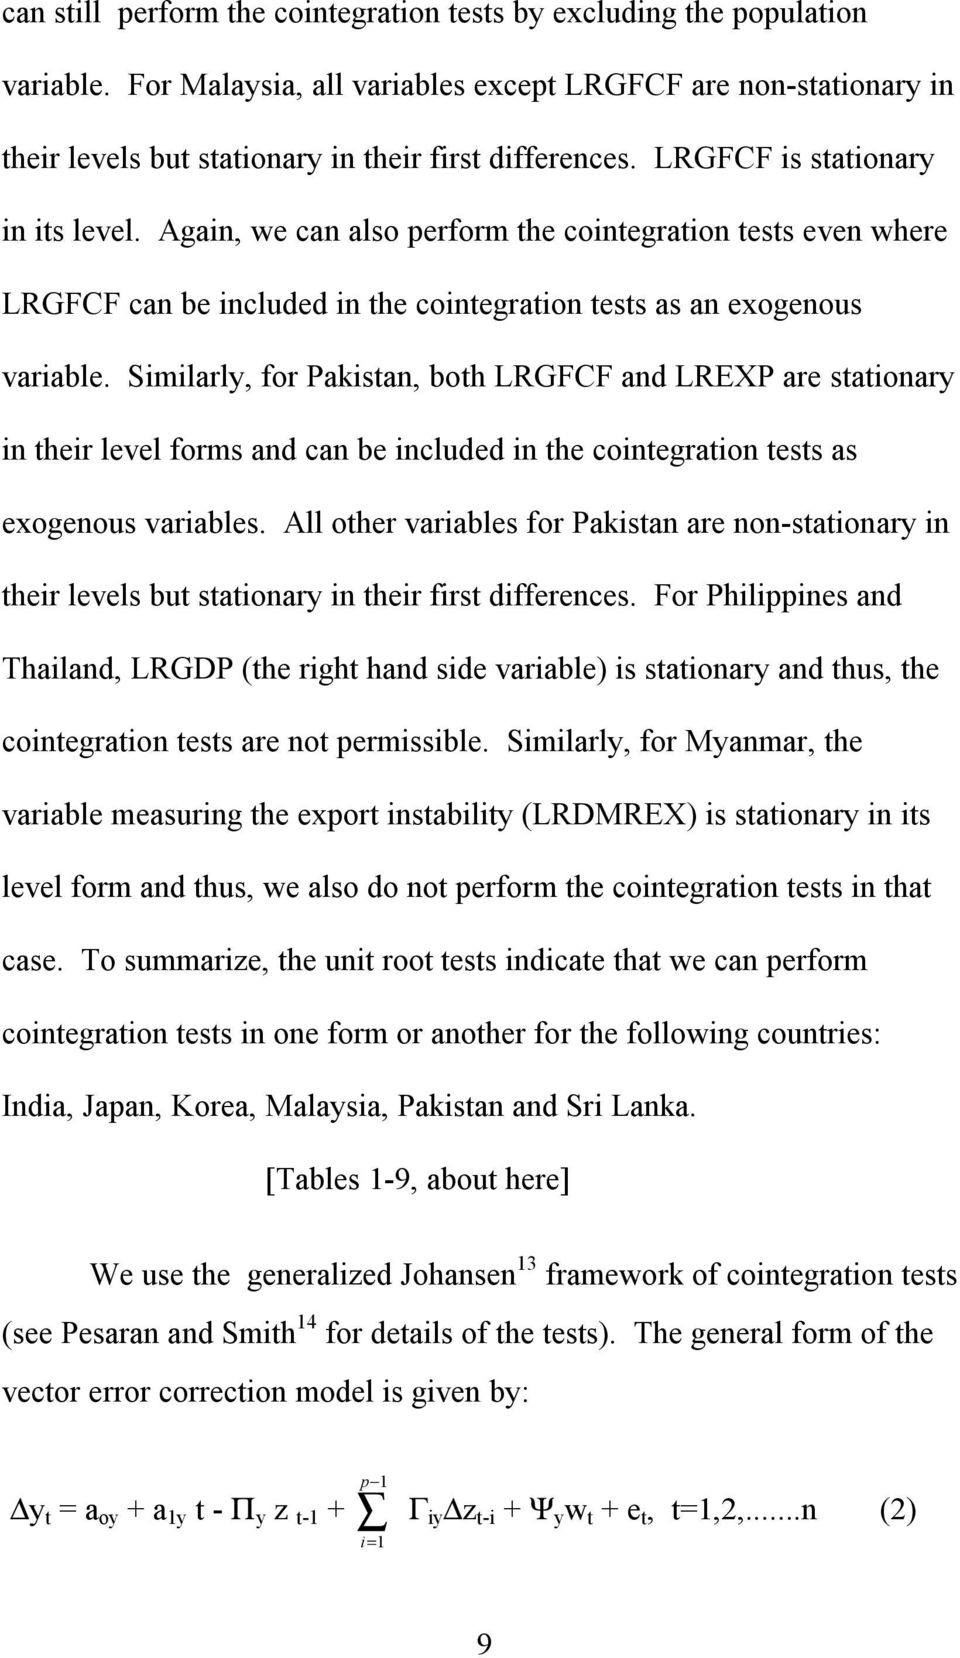 Similarly, for Pakistan, both LRGFCF and LREXP are stationary in their level forms and can be included in the cointegration tests as exogenous variables.